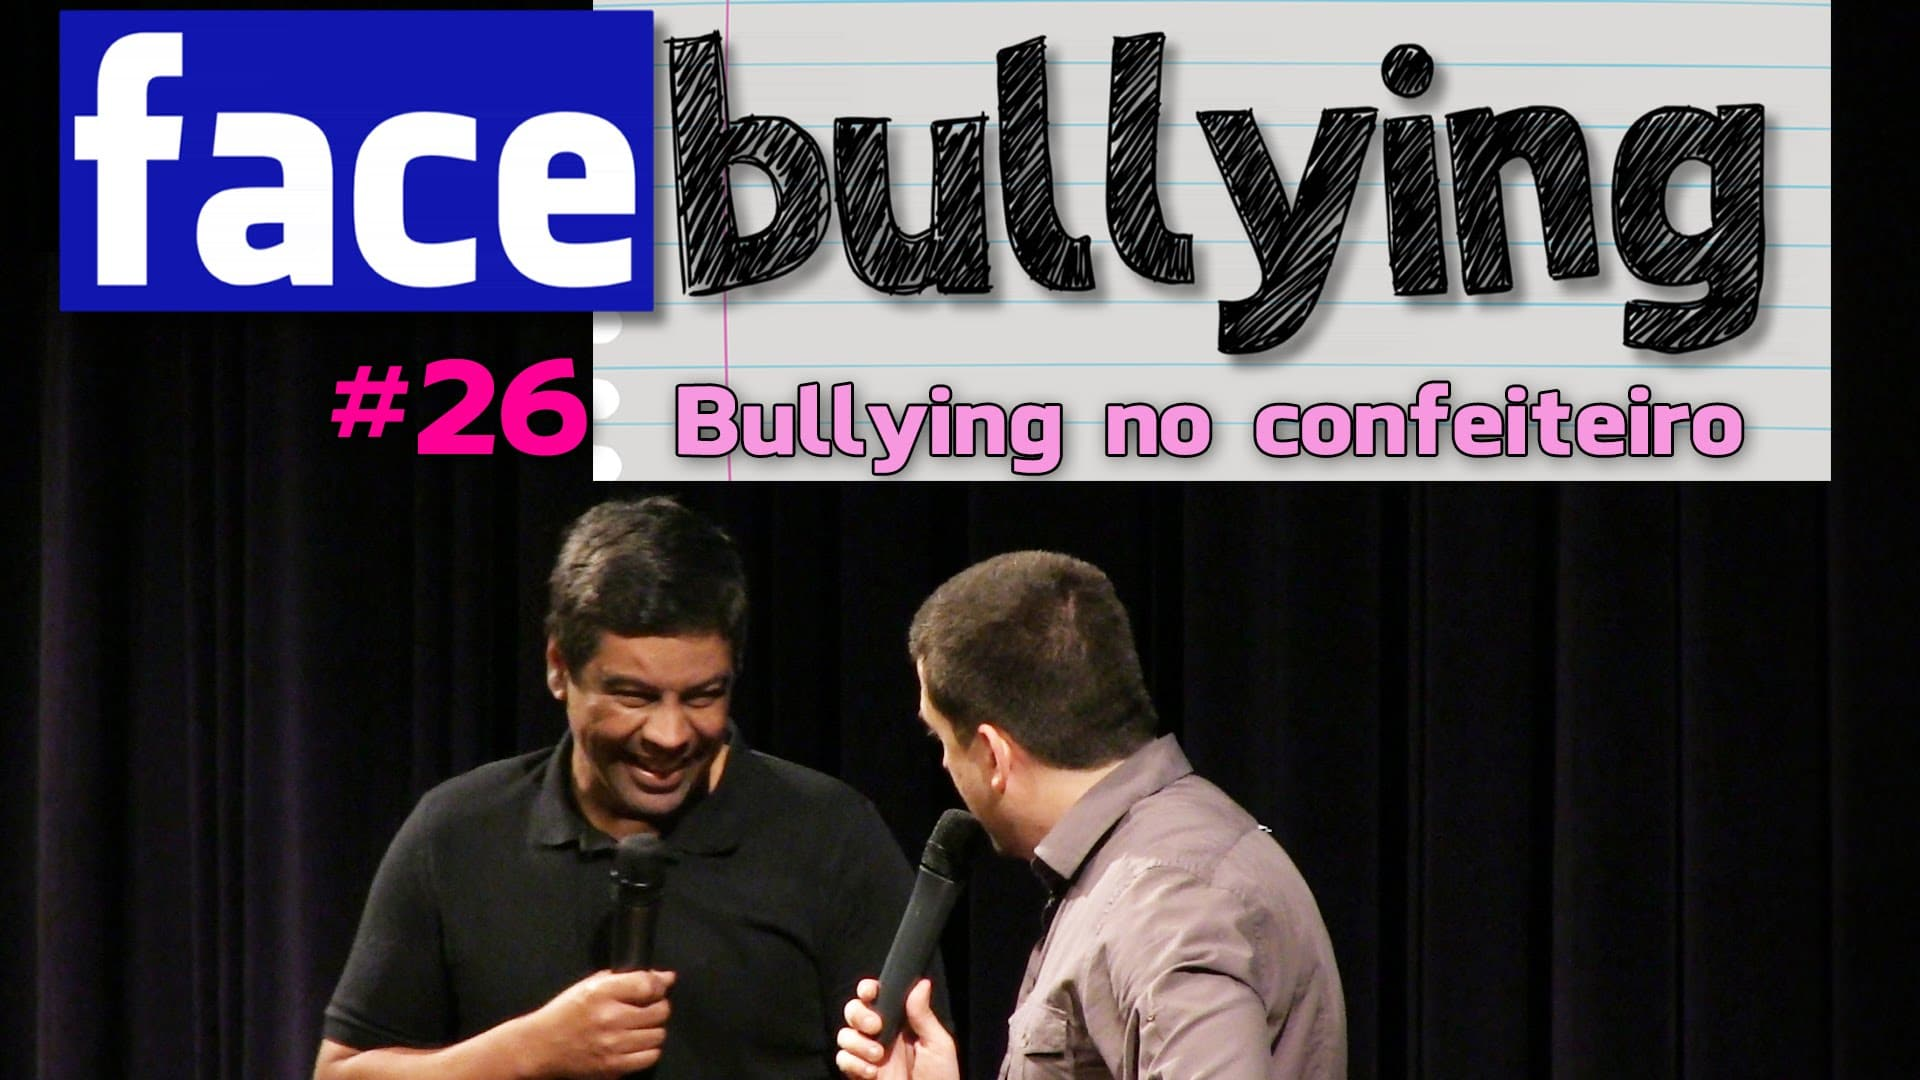 Facebullying – Bullying no confeiteiro